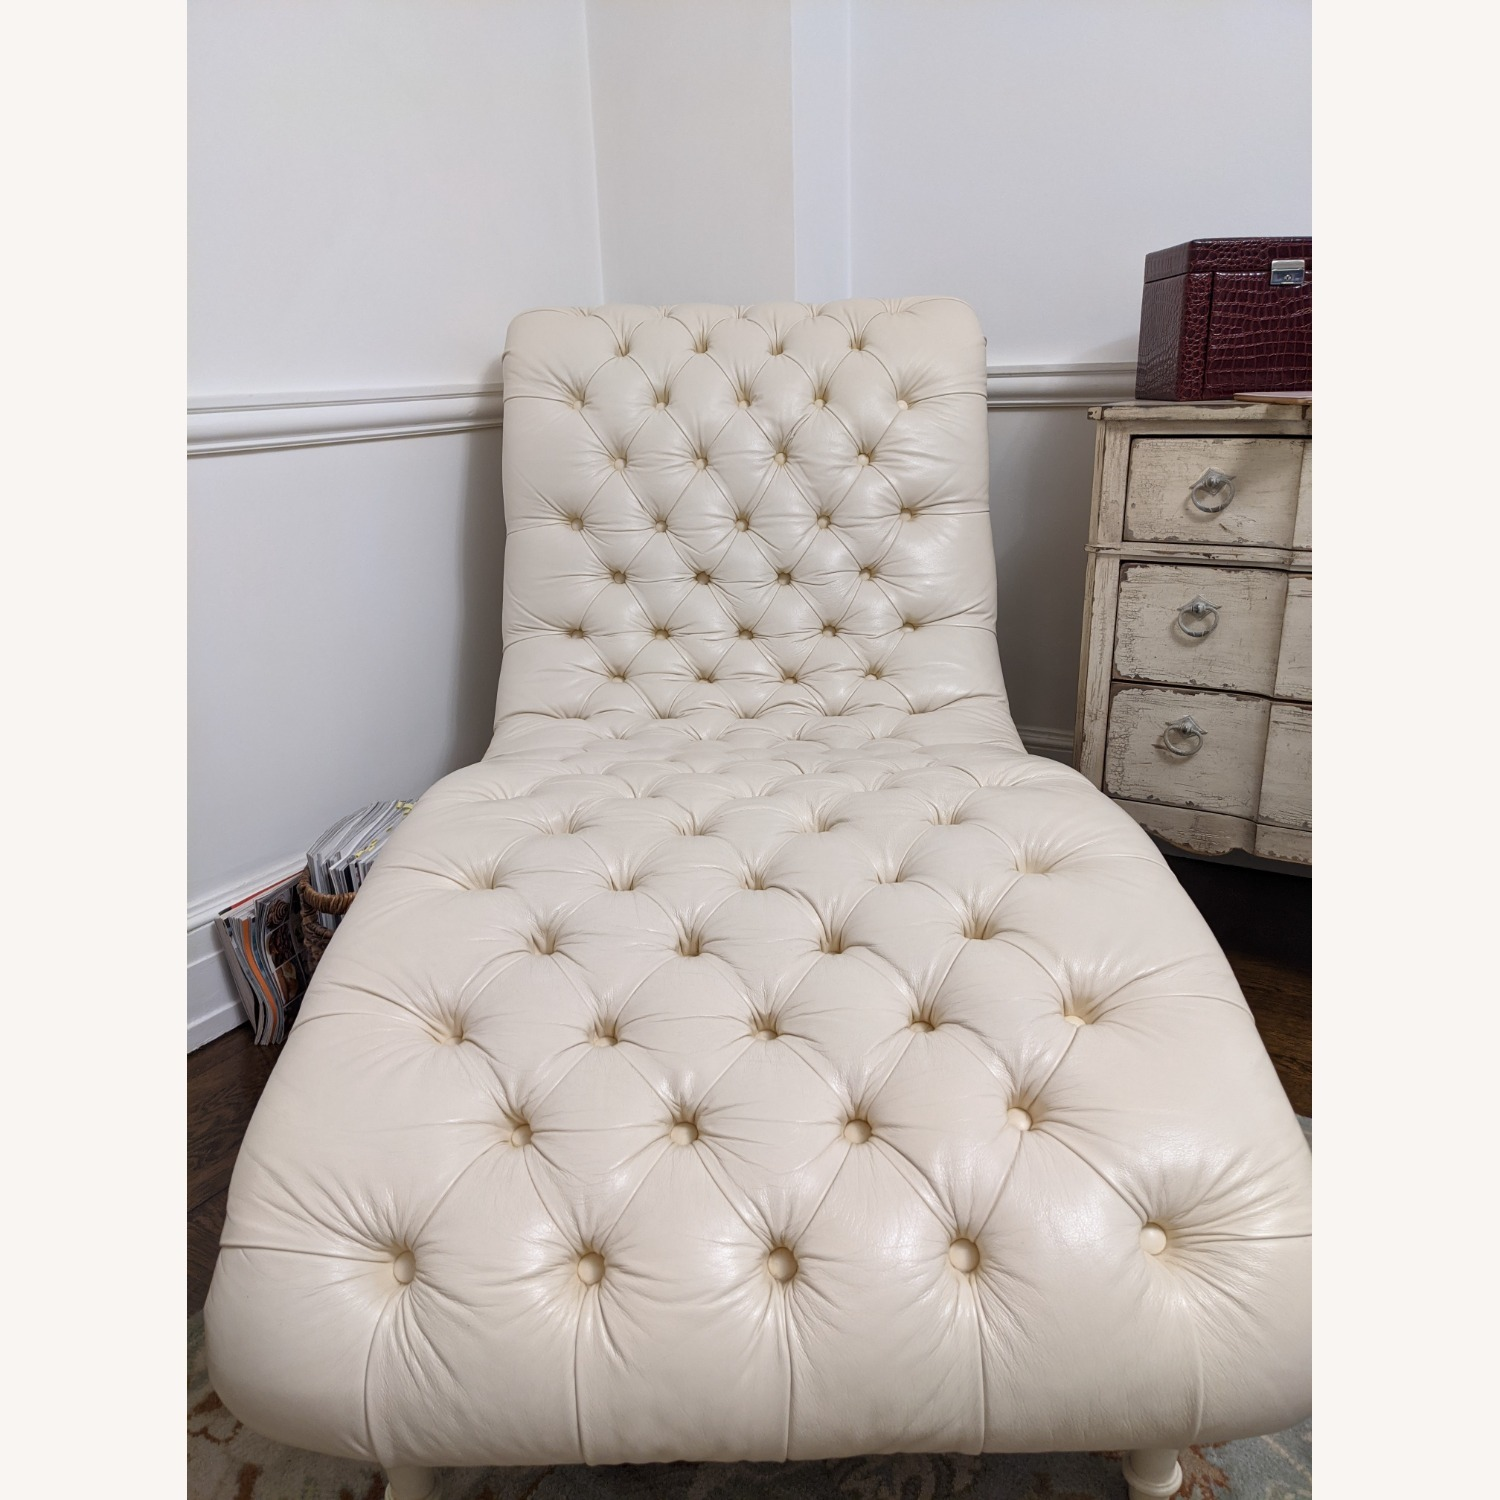 Ethan Allen Leather Chaise Long - image-1